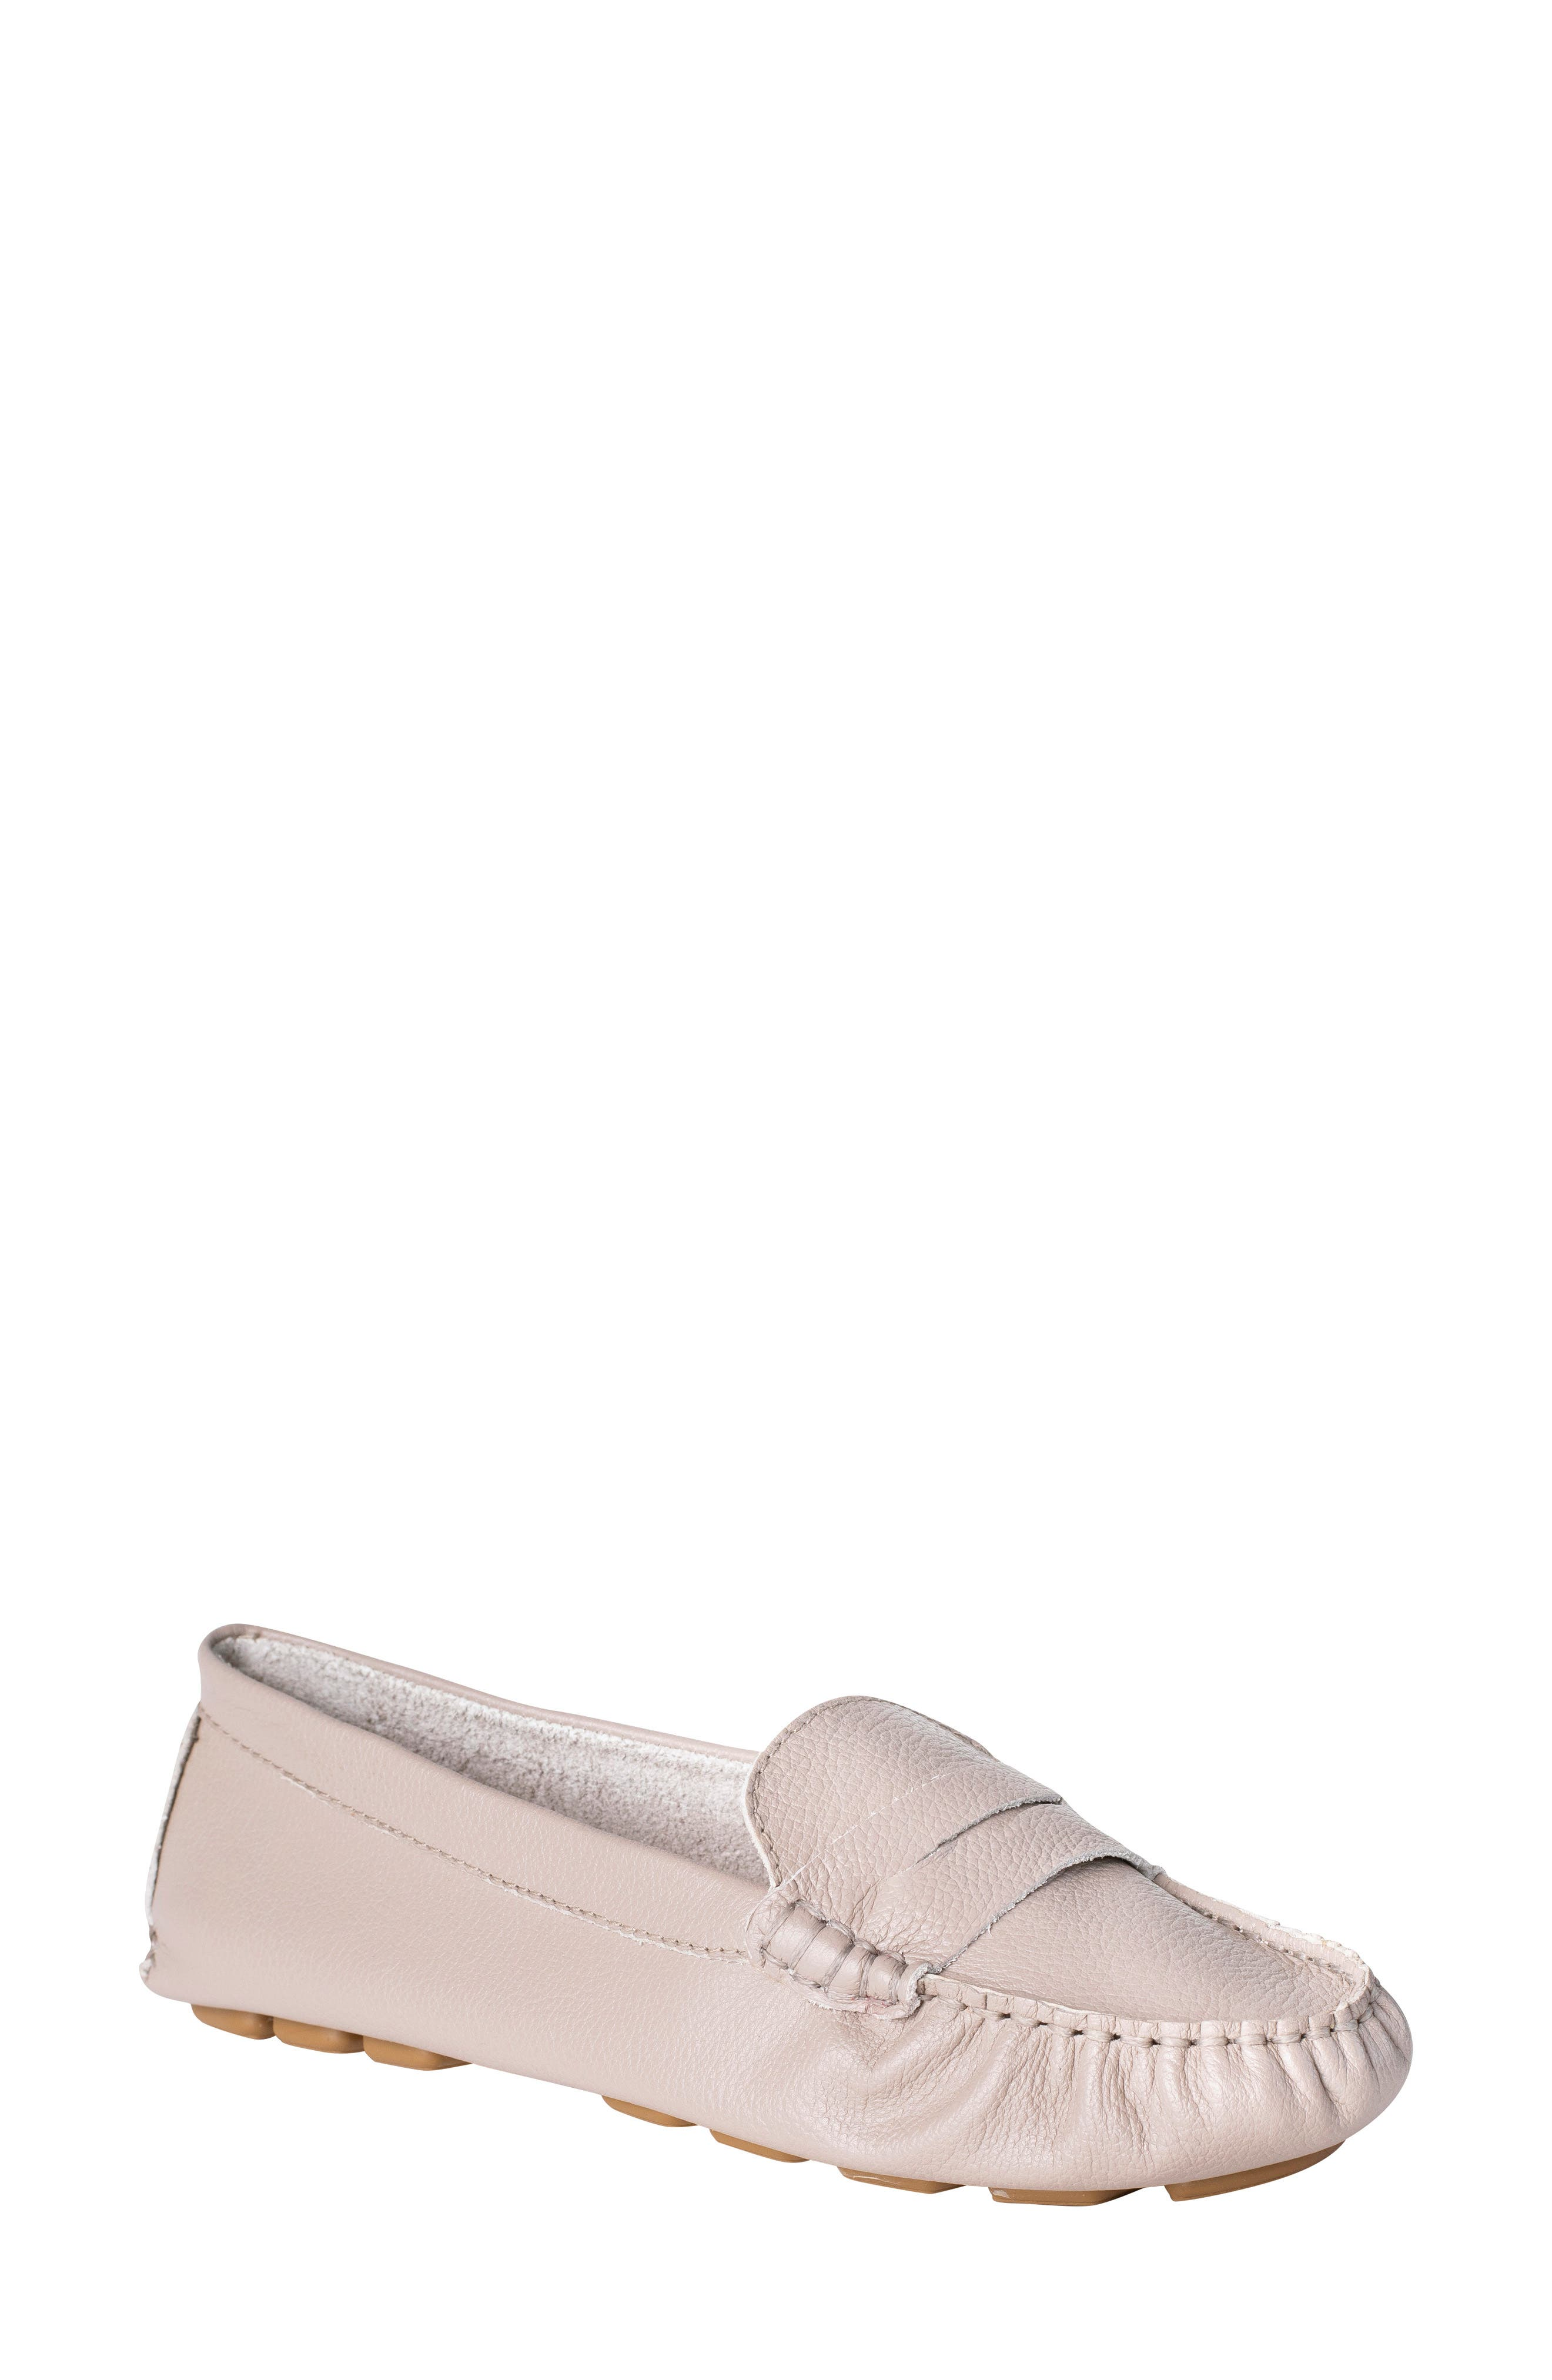 Ukies Driving Moccasin Loafer EU - Beige